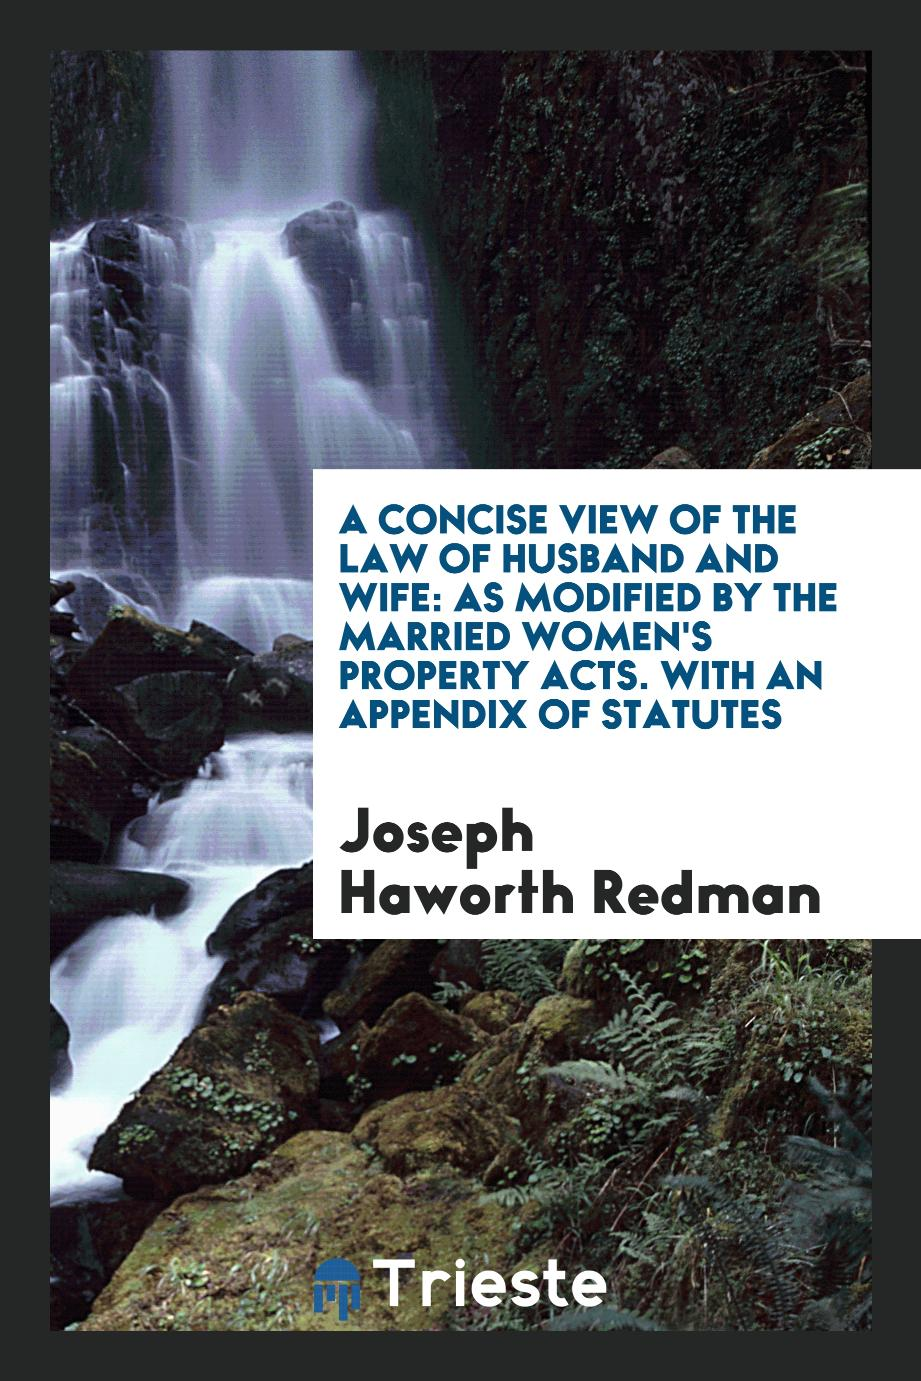 A Concise View of the Law of Husband and Wife: As Modified by the Married Women's Property Acts. With an Appendix of Statutes